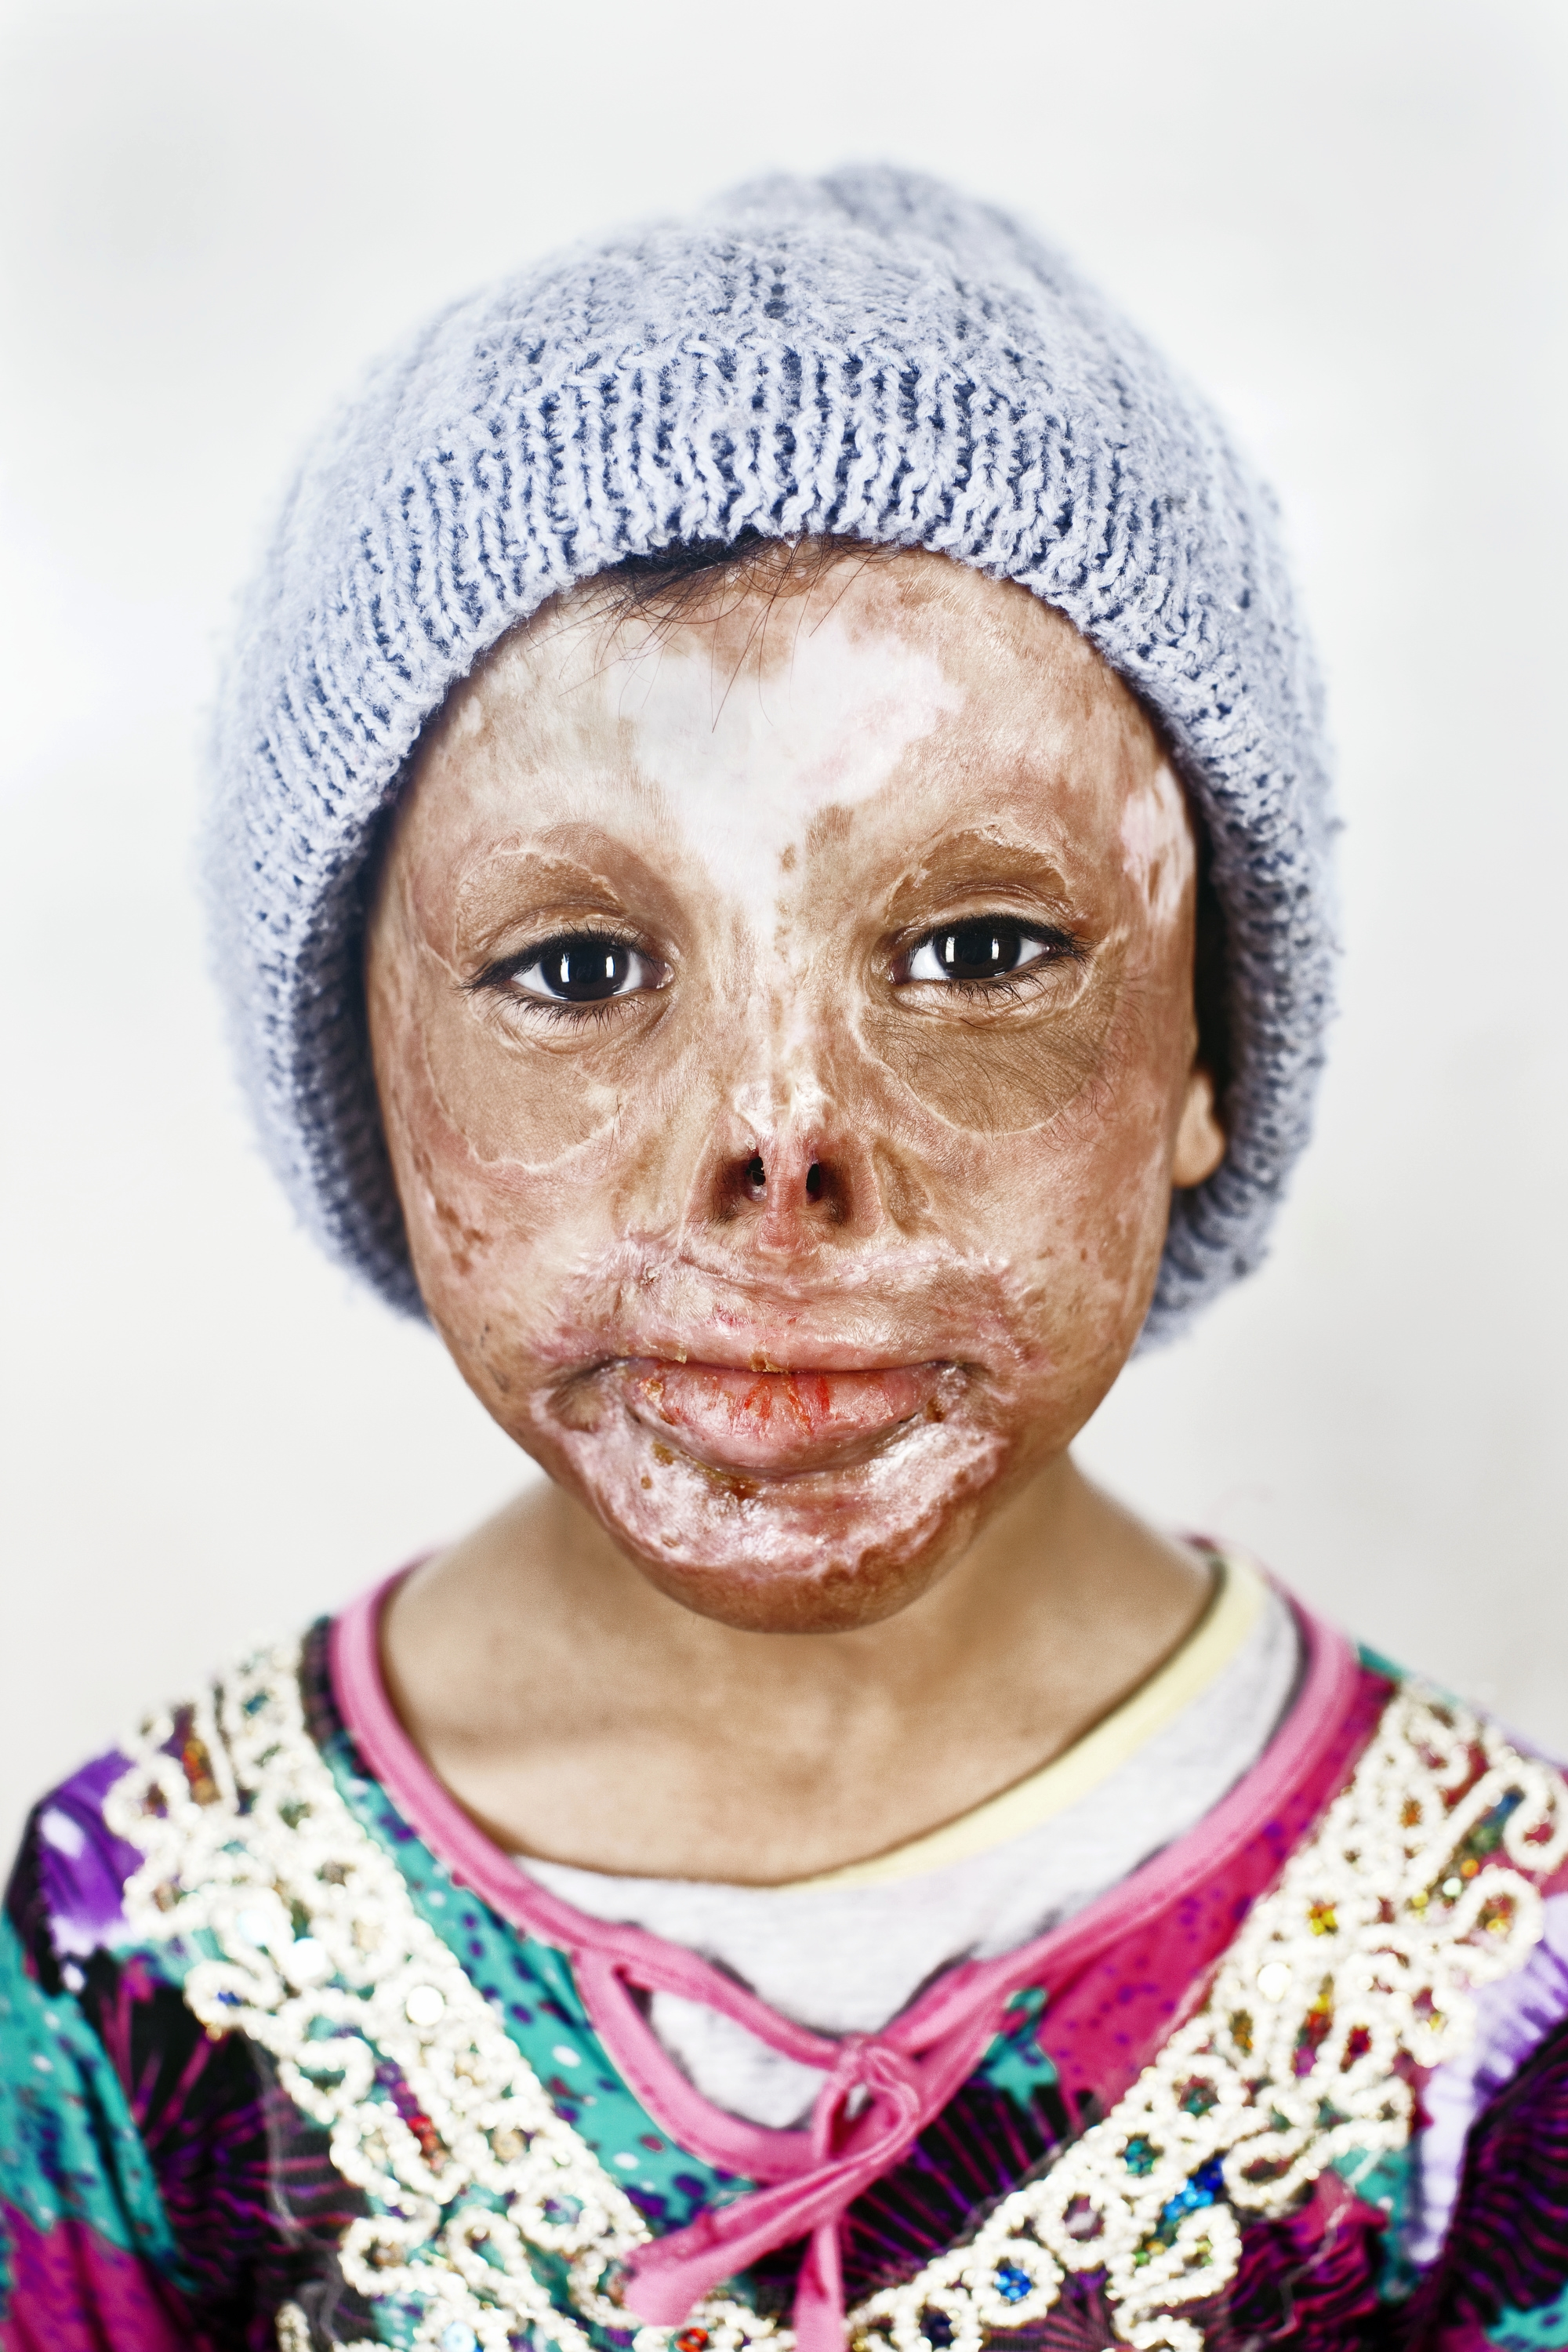 Saja Kheir Allah is six years old. She was sleeping in her home when an explosion set it on fire. She has spent two years in Amman with her father. Saja's mother, two brothers and two sisters are back in Iraq. She does not know when she will go back to see them.